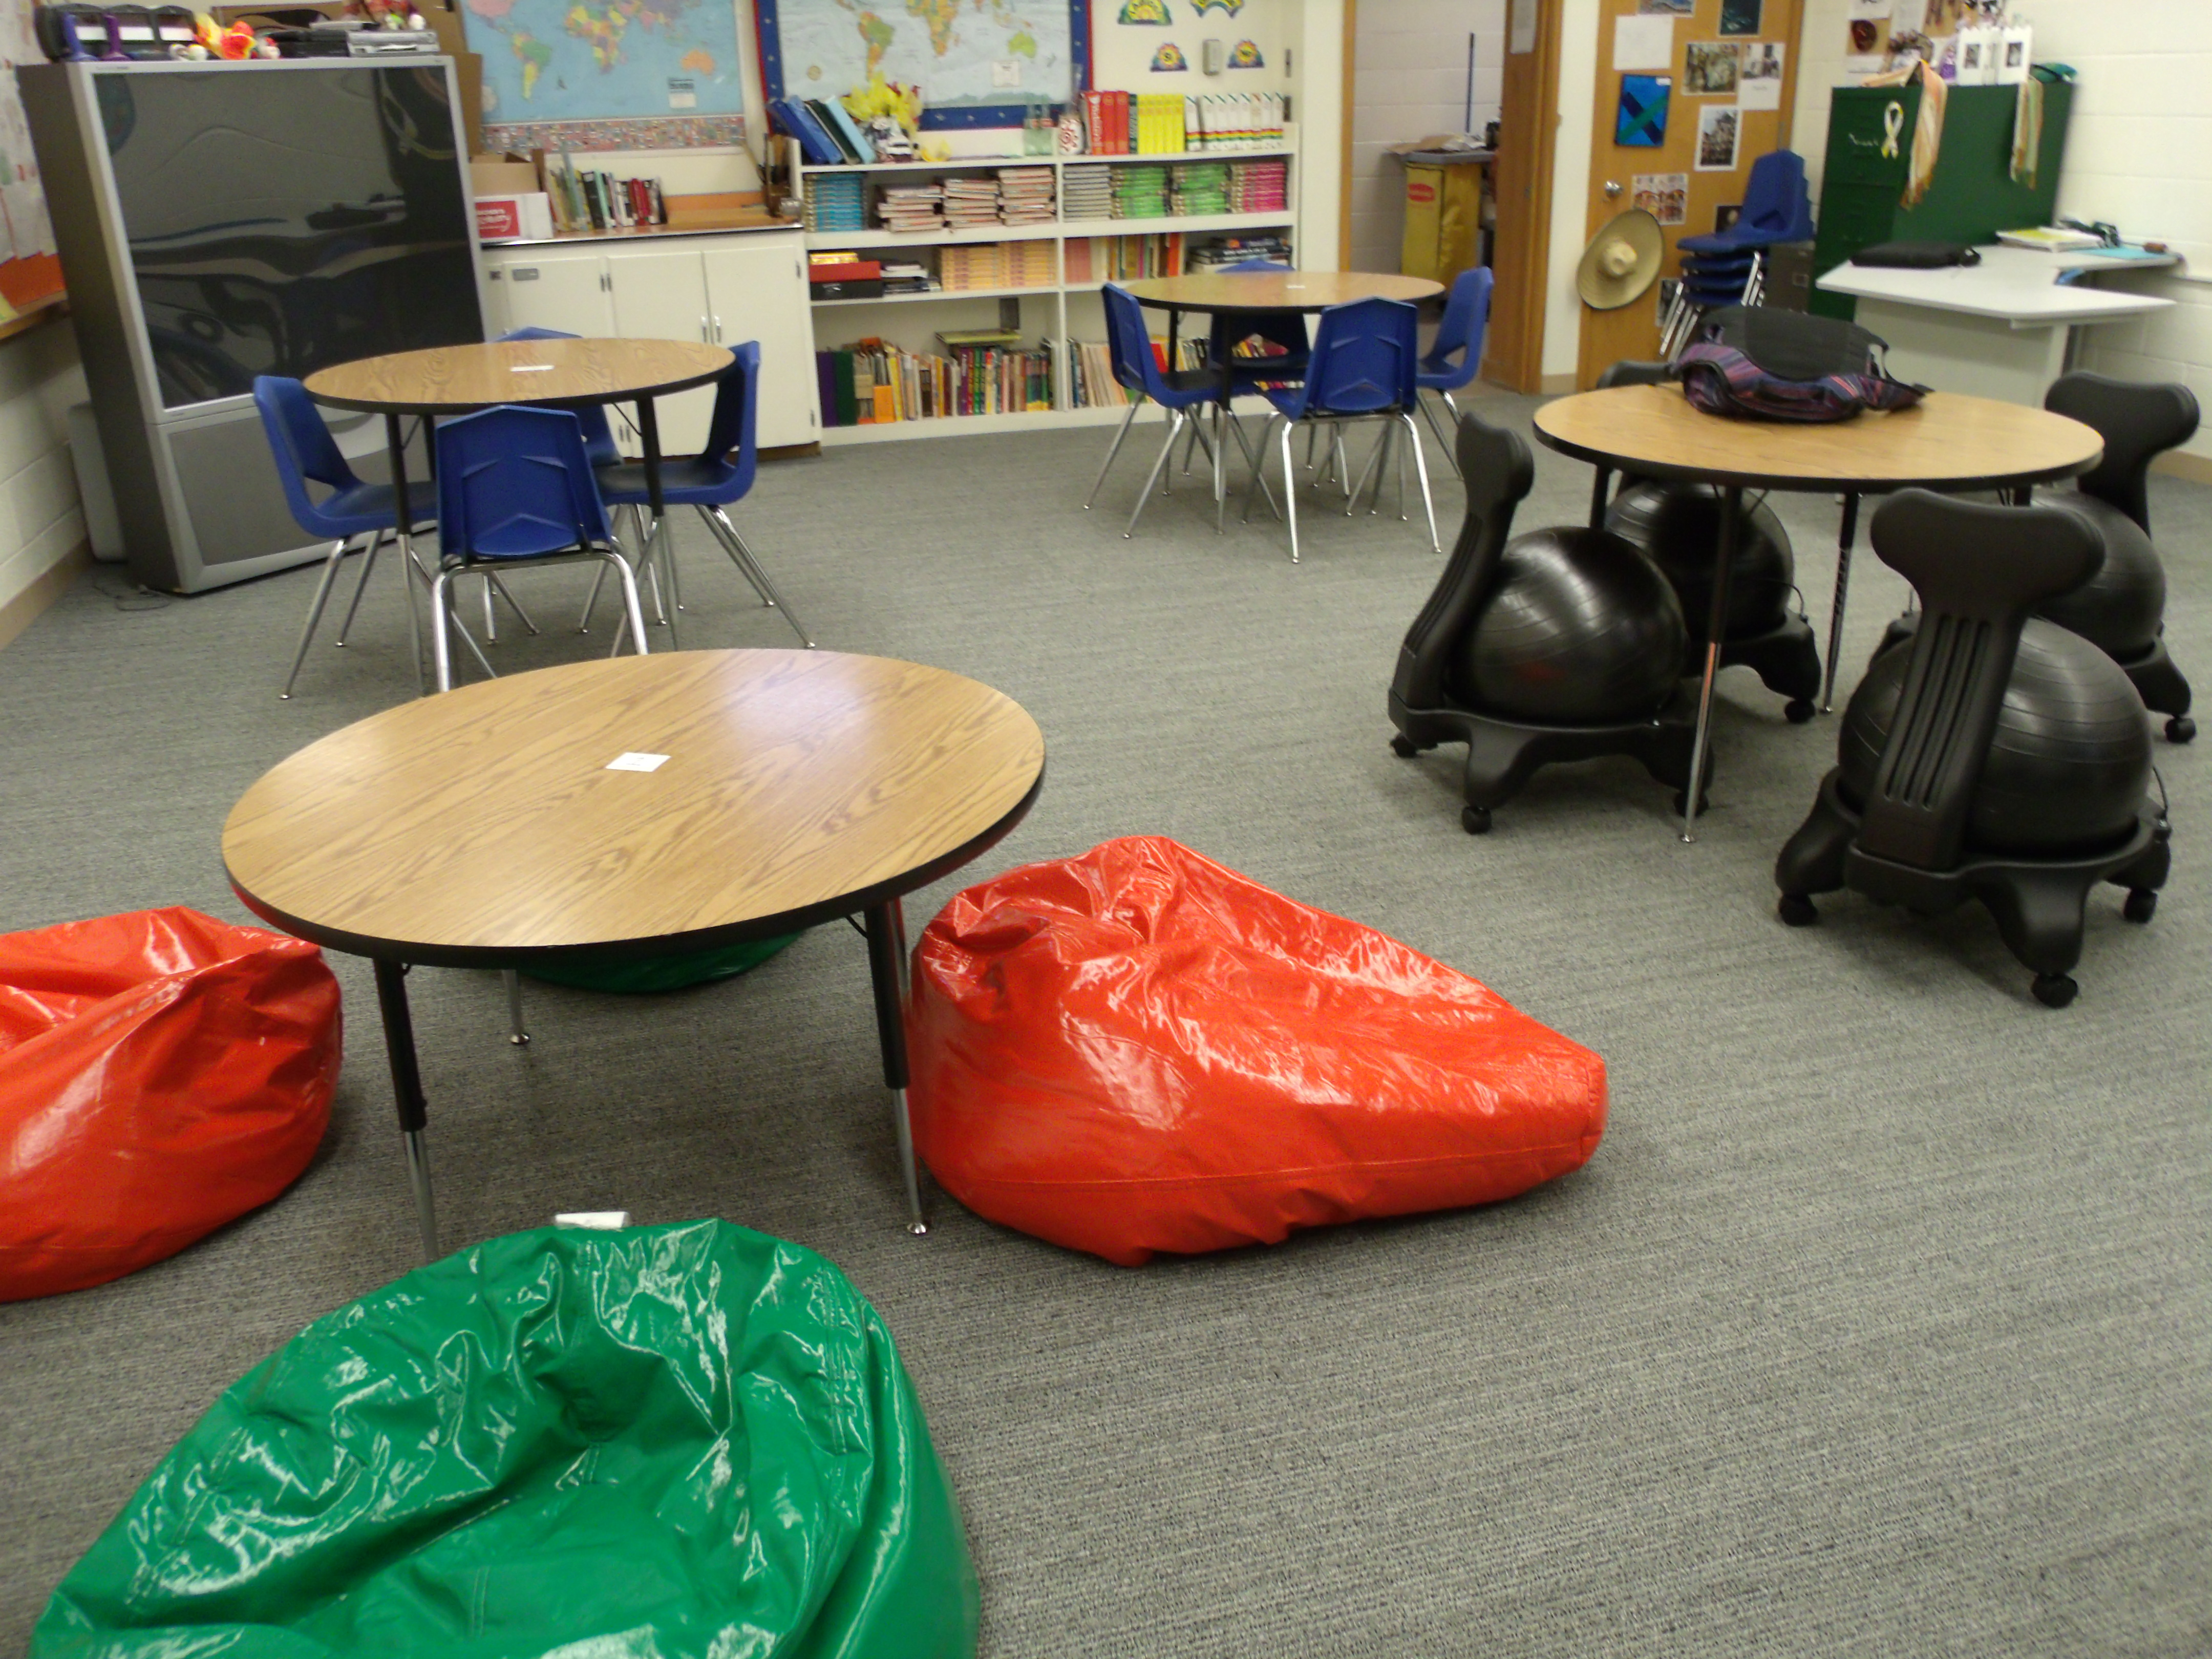 Cool Bean Bag Chairs Ball Chairs In The Classroom Ramblings Of A Perforated Mind